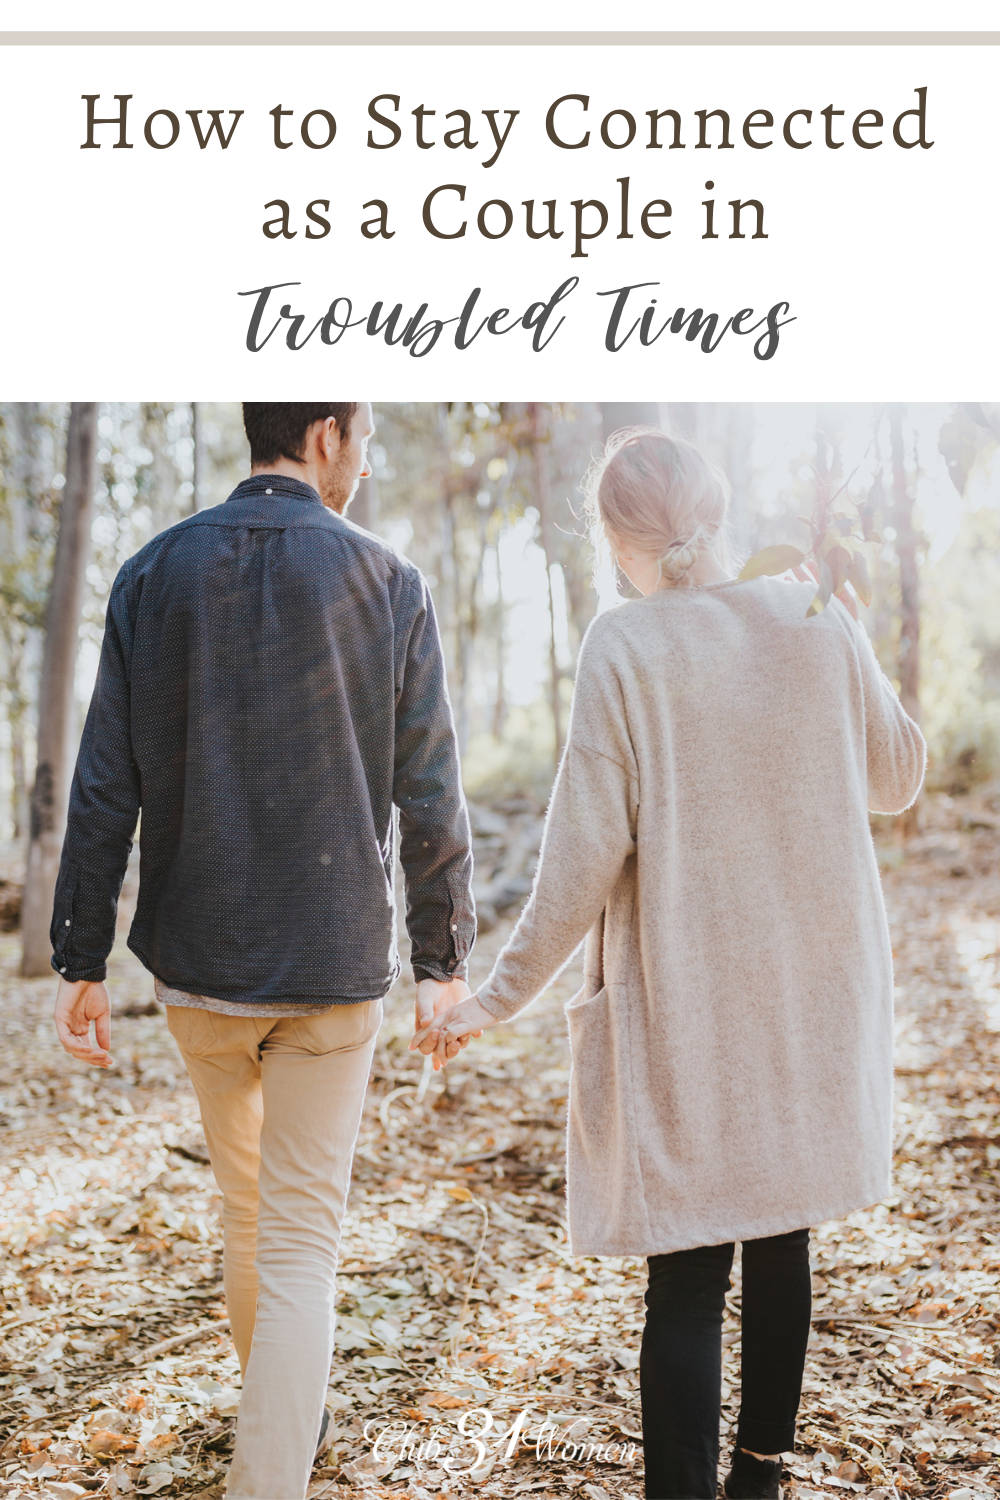 When hard times come upon us, it is even more vital to be intentional about connecting as a couple so you don't drift apart. via @Club31Women